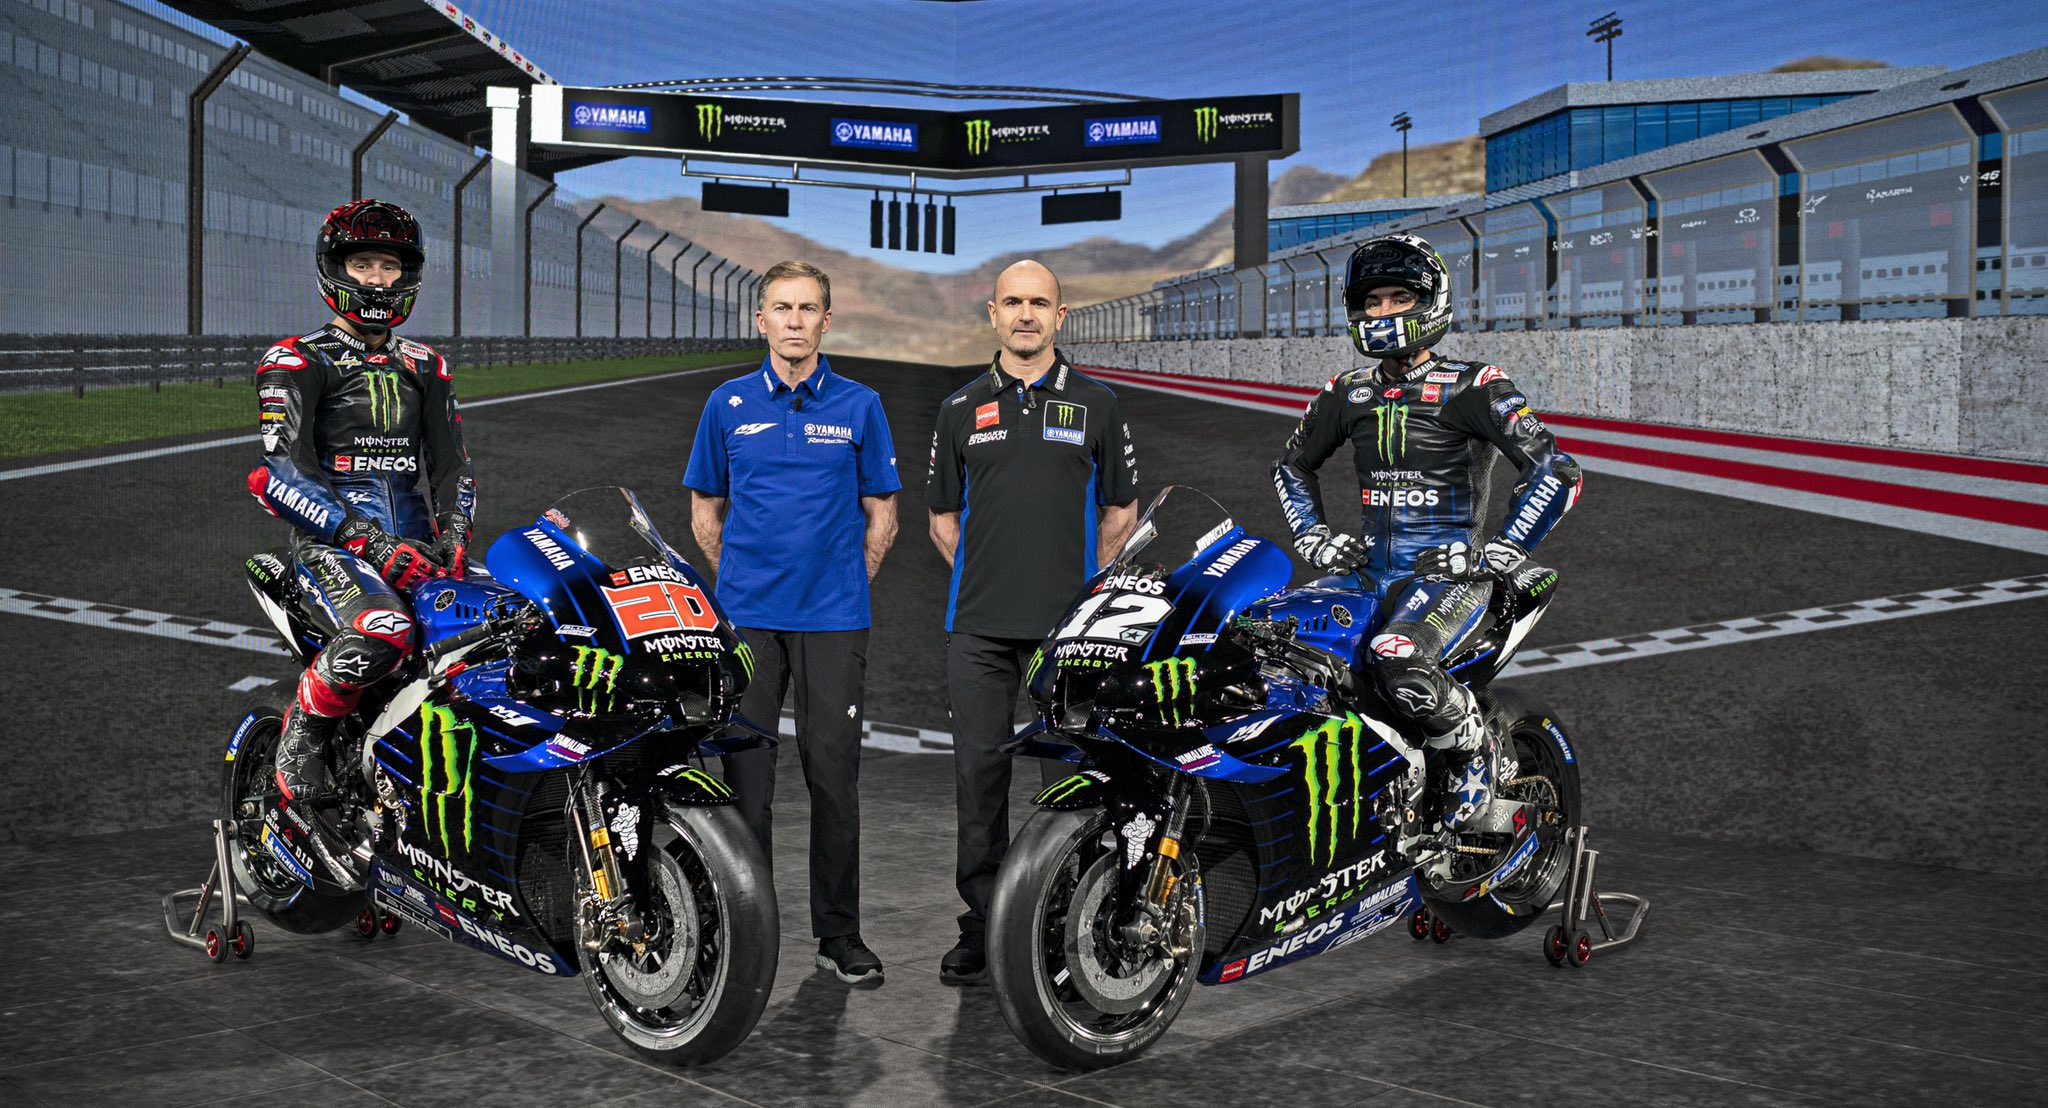 Yamaha committed to MotoGP to 2026 at least